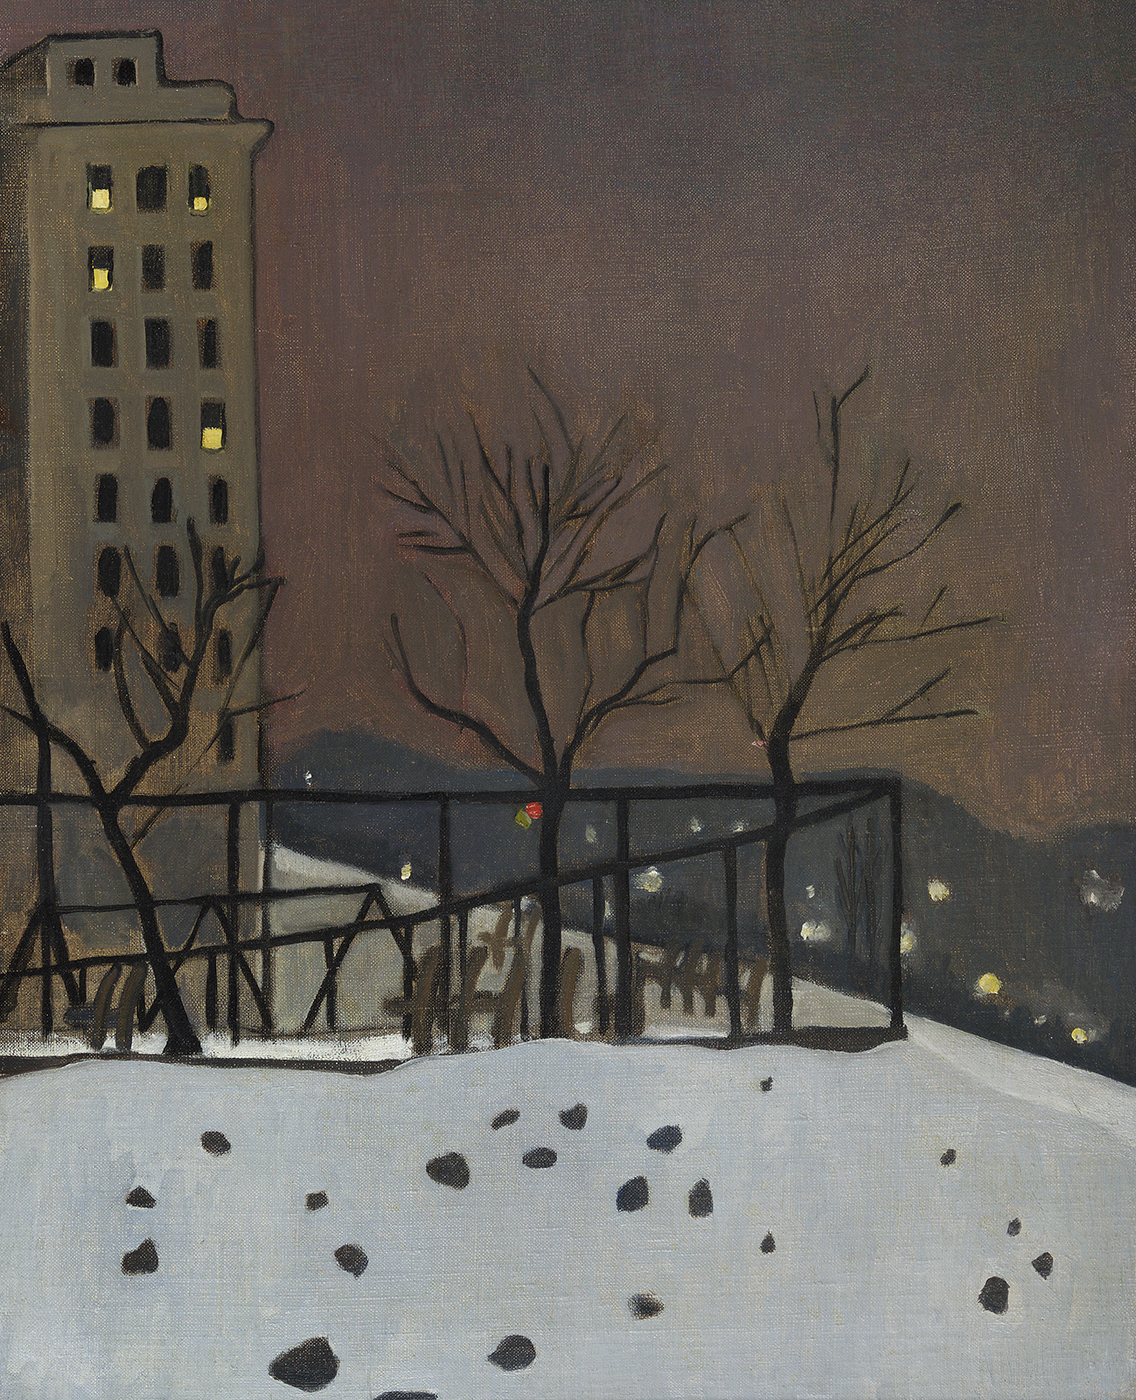 Painting of bare trees in snow, hills in background, apartment building on left